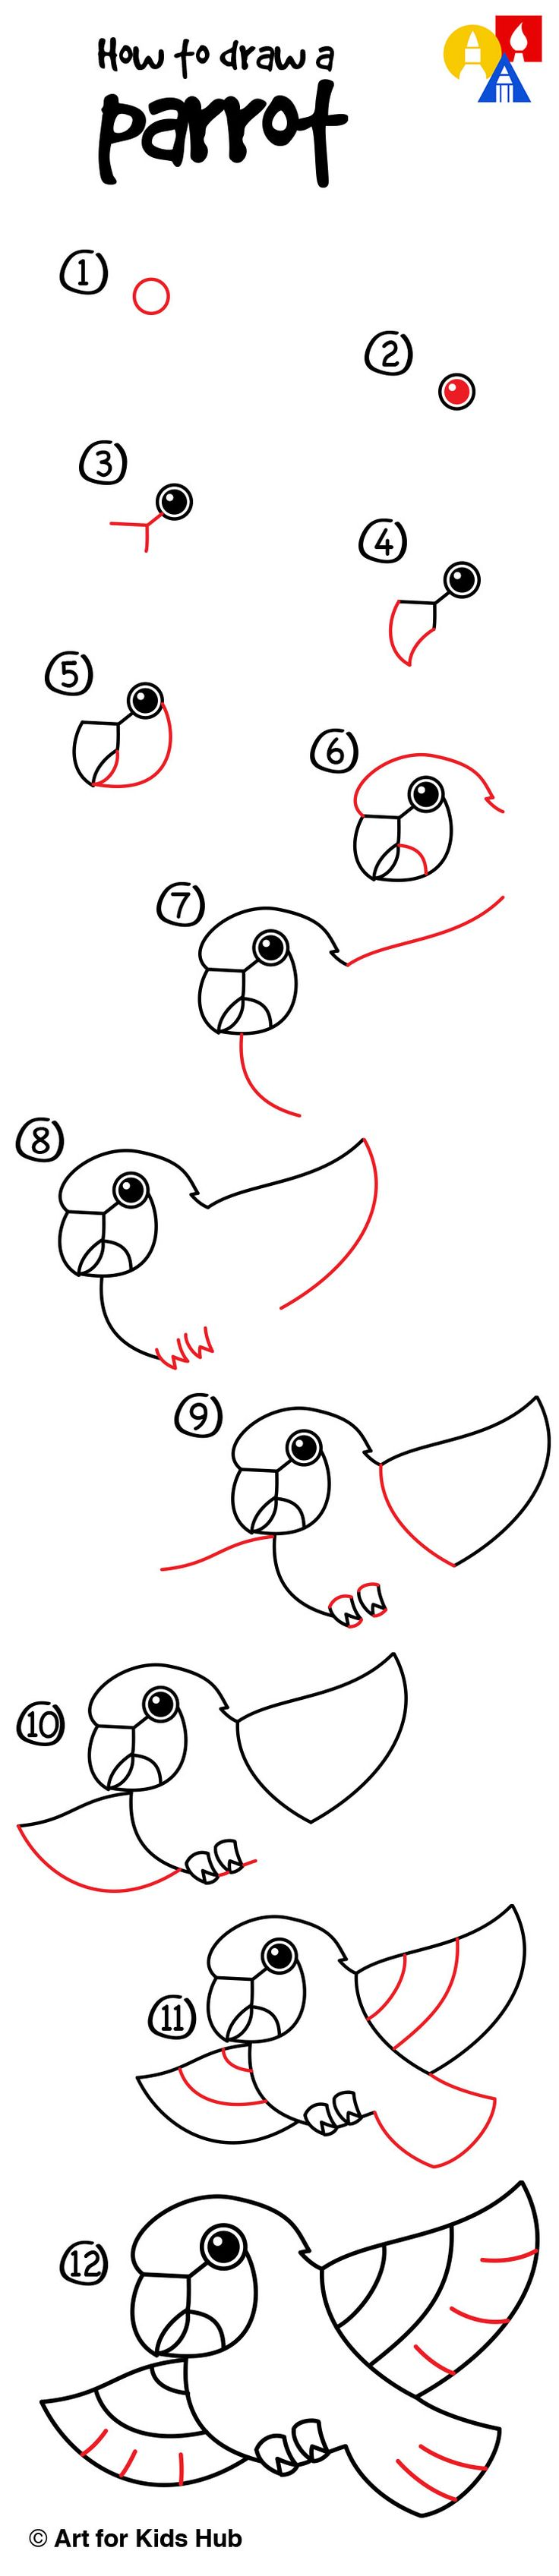 How to draw a cartoon parrot!